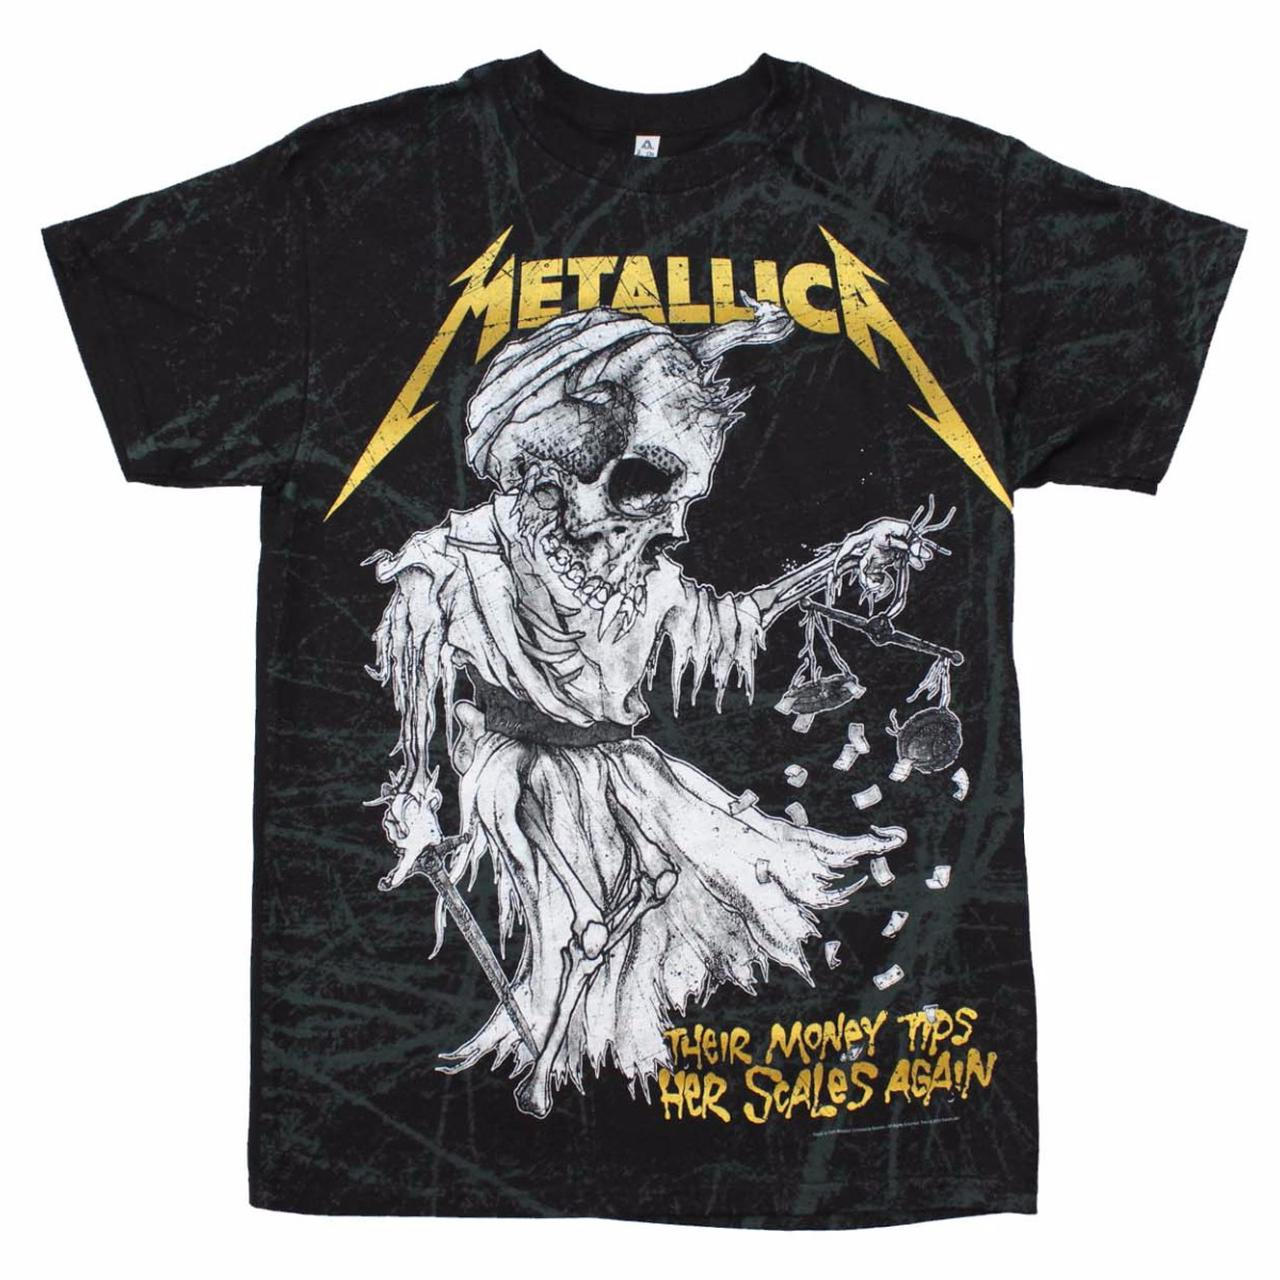 metallica t shirt metallica tip the scales t shirt. Black Bedroom Furniture Sets. Home Design Ideas